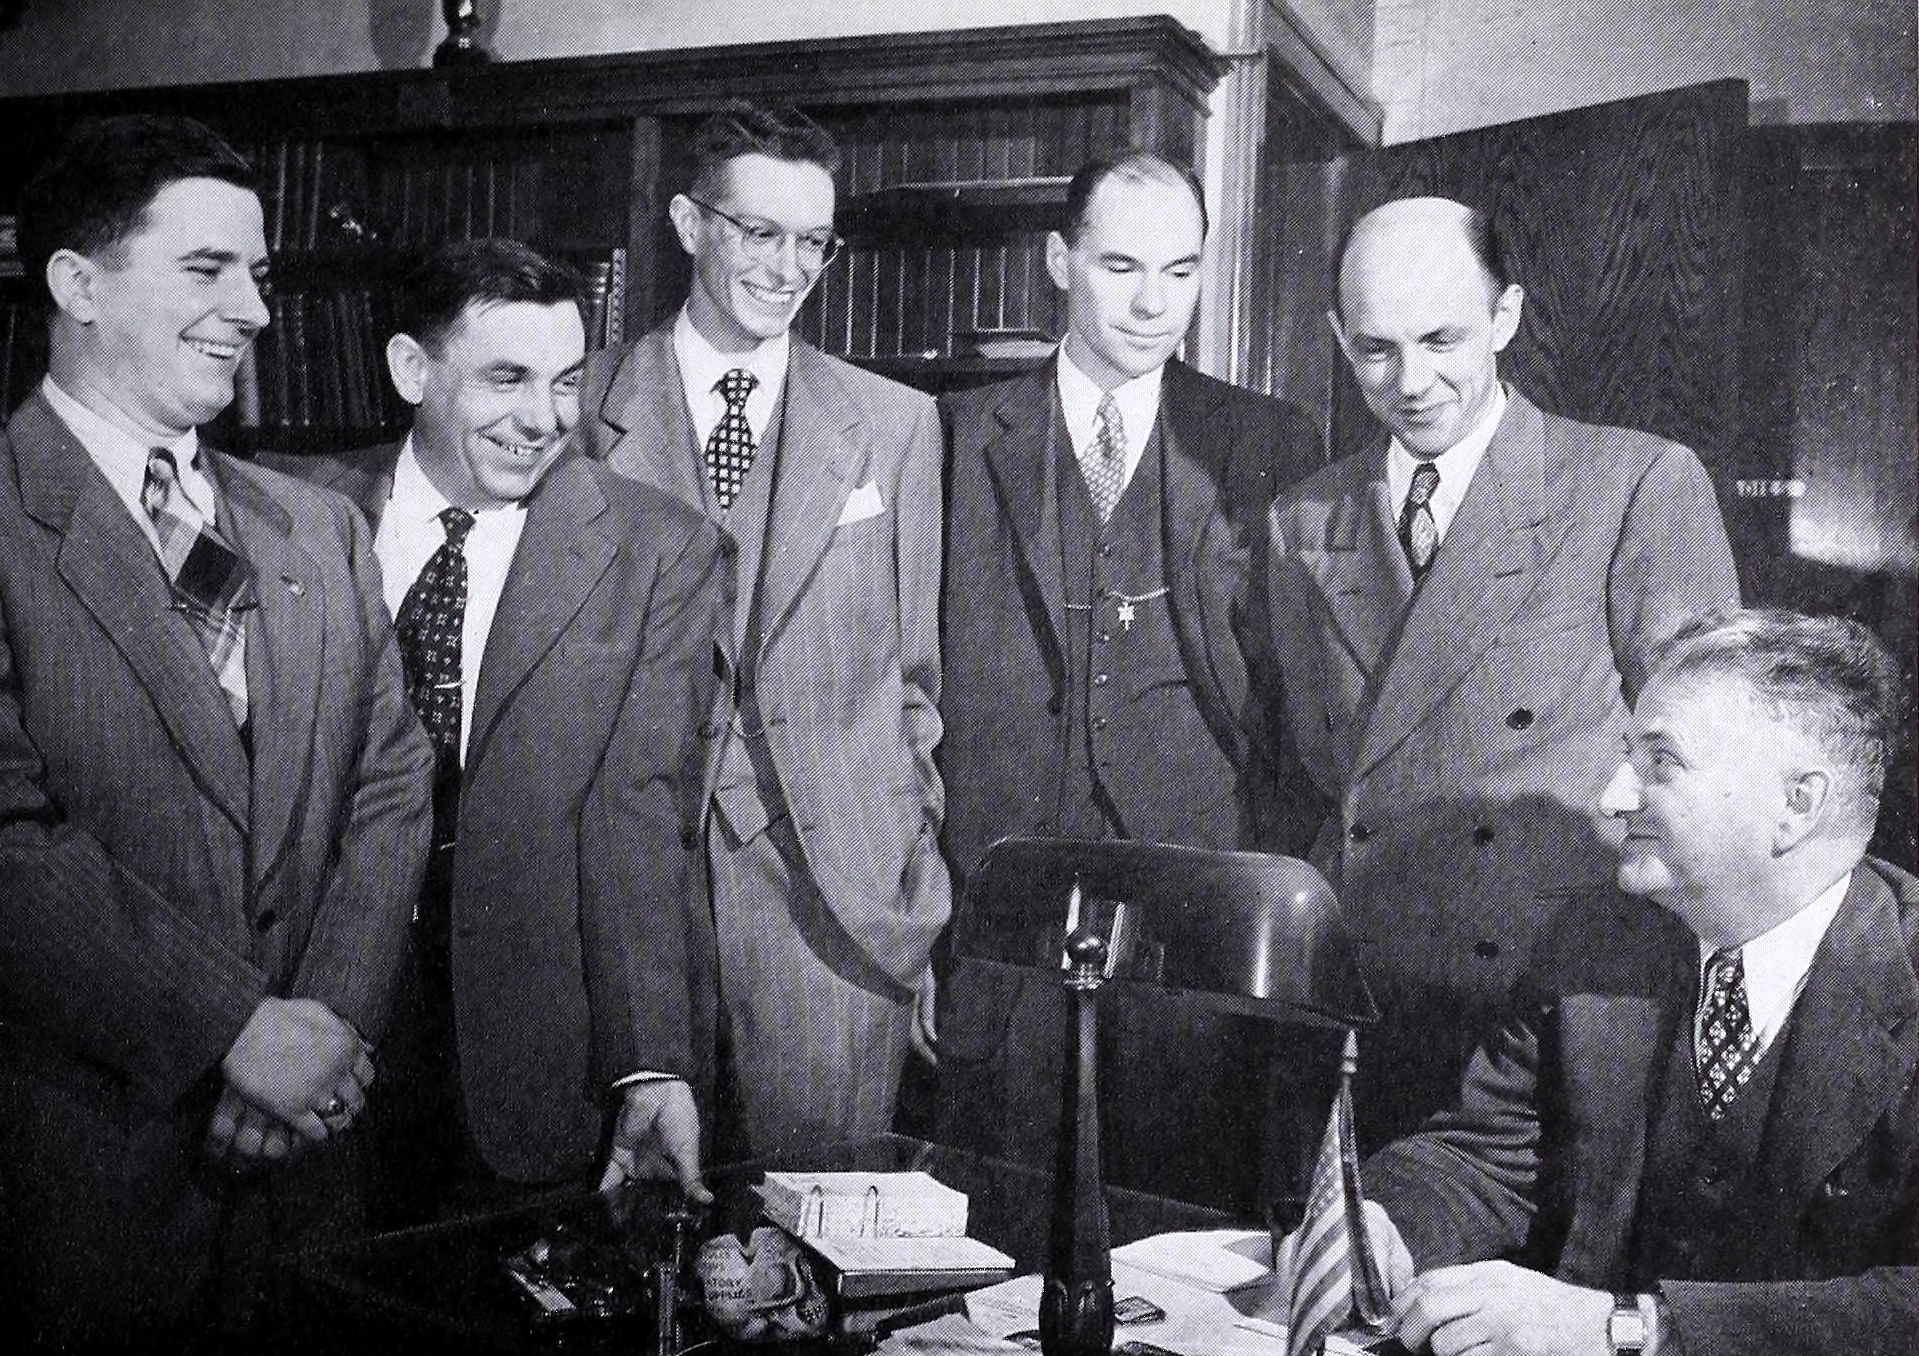 Dr. Shankweiler with colleagues from the Biology Department: Professors Dively,  Green, Romig, Applington, and Trainor, 1949